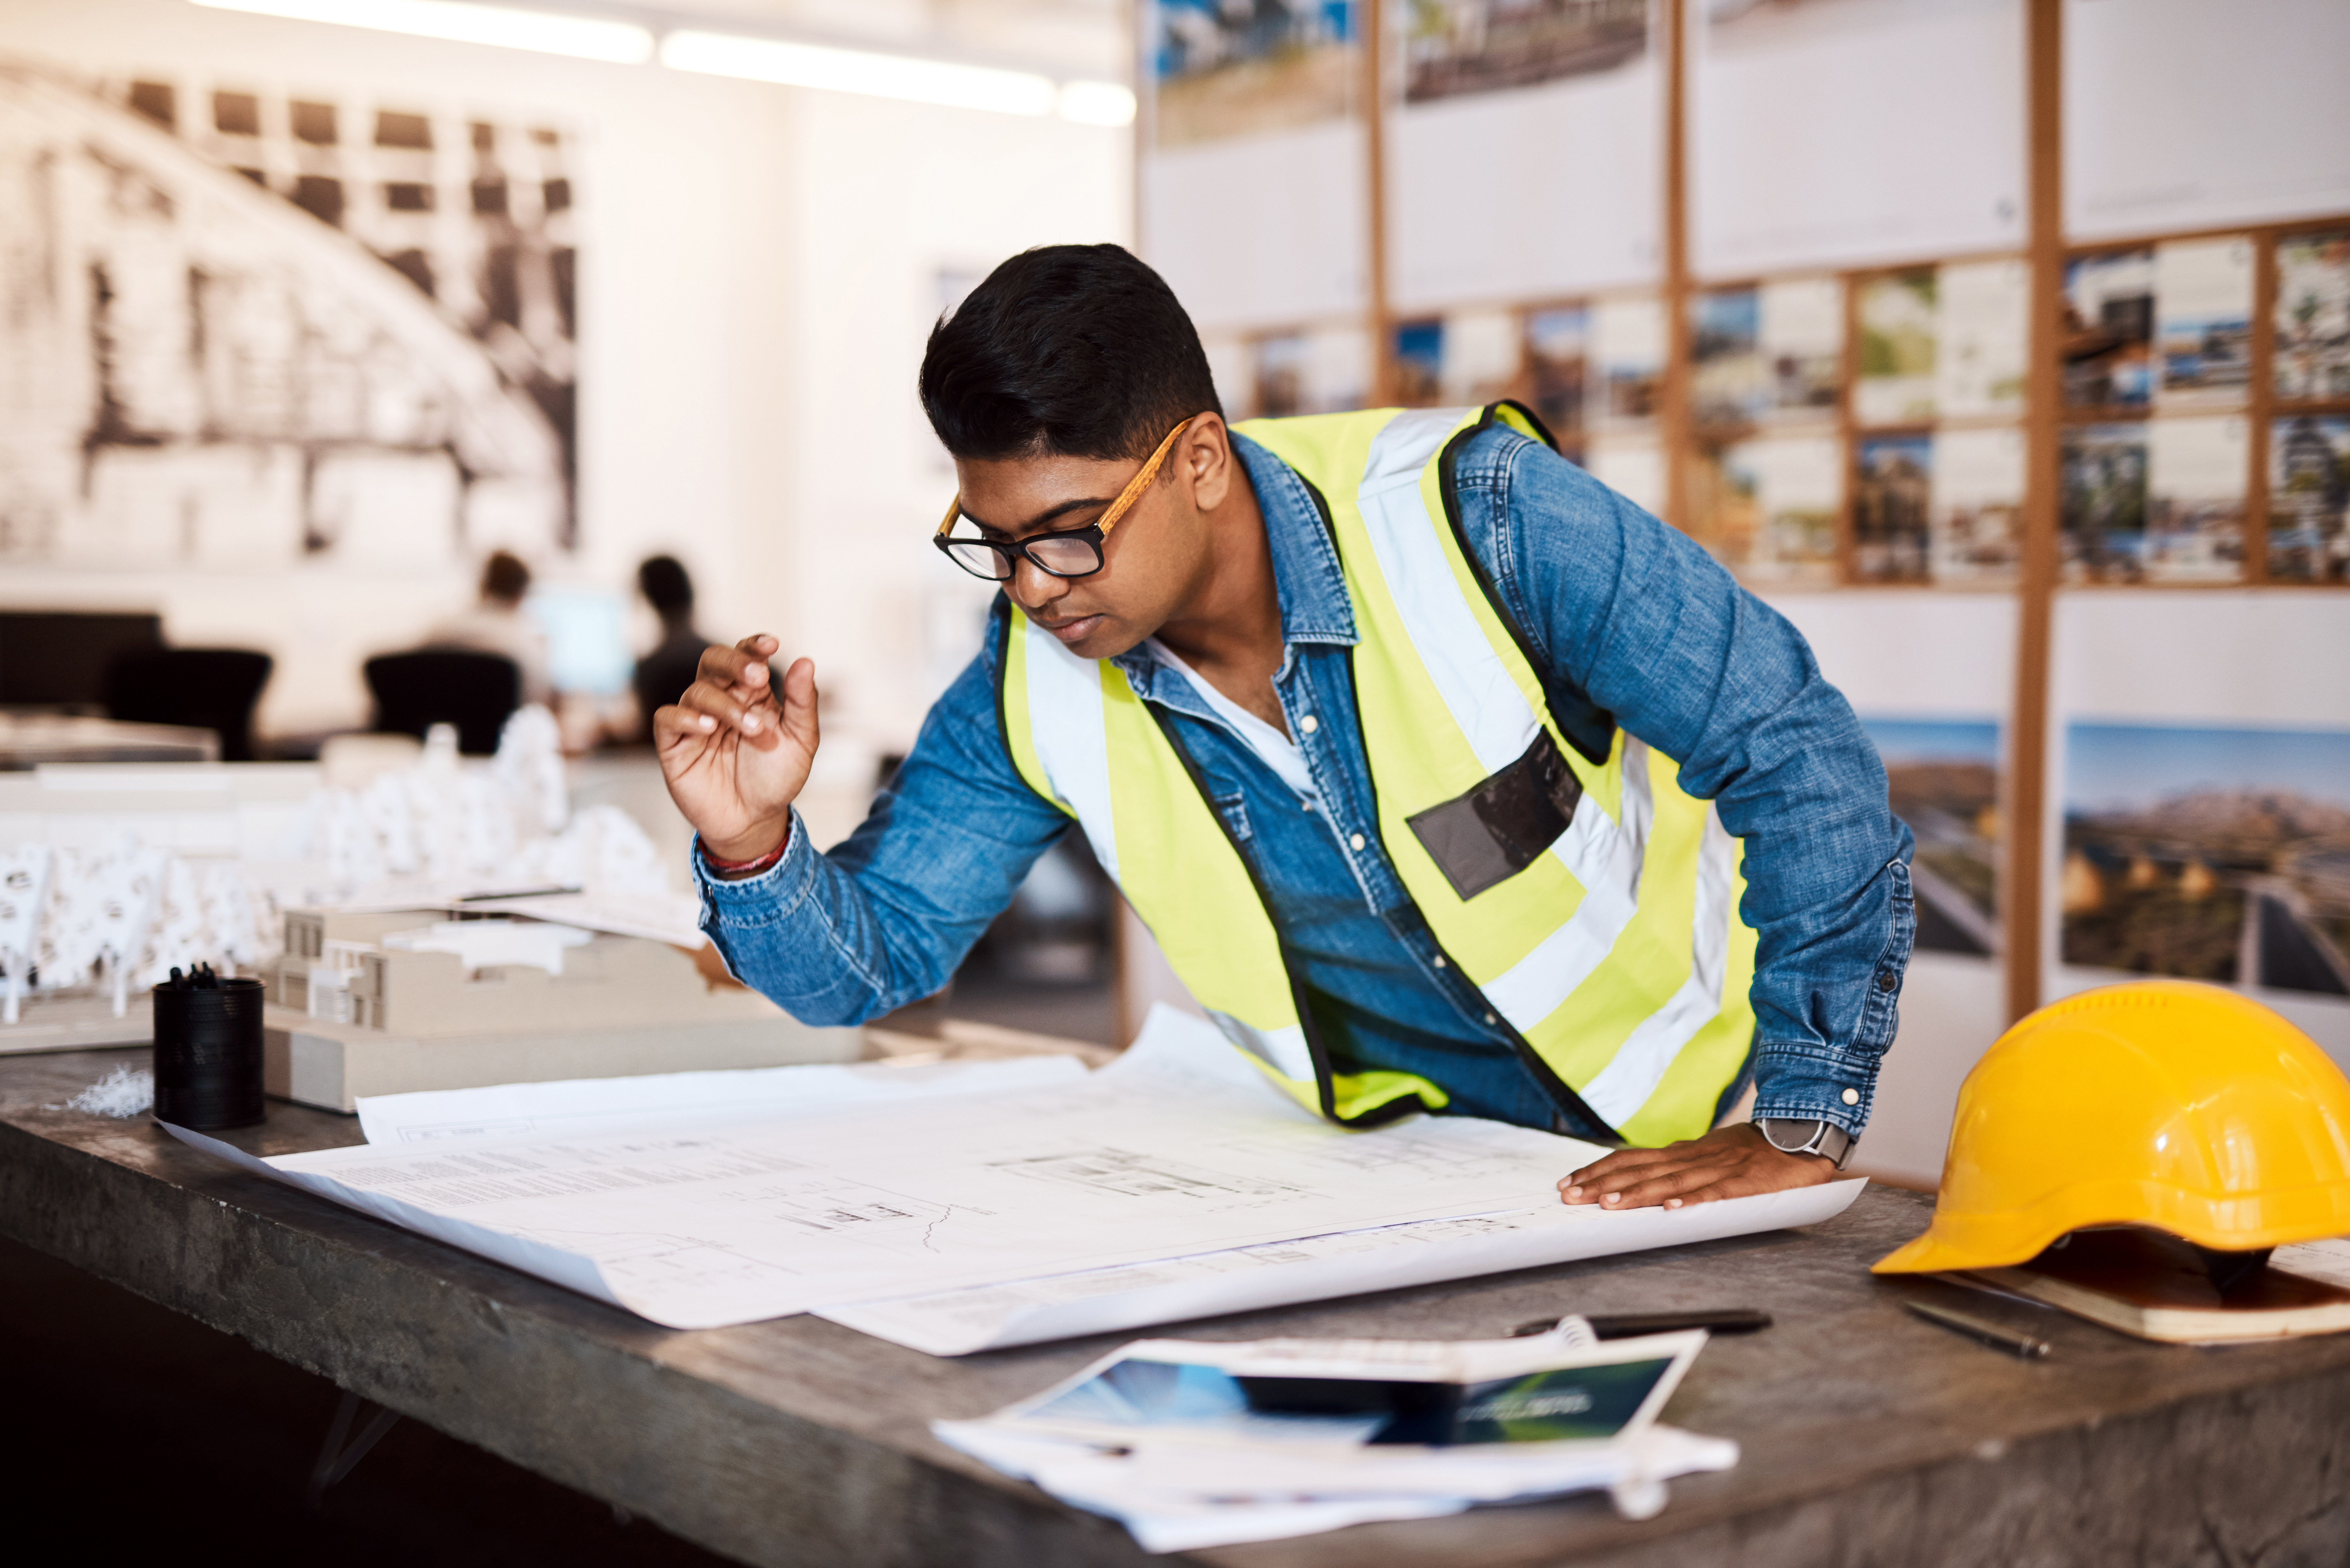 A construction project manager at desk wearing high-vis jacket, beside yellow hard hat, makes up architectural plans